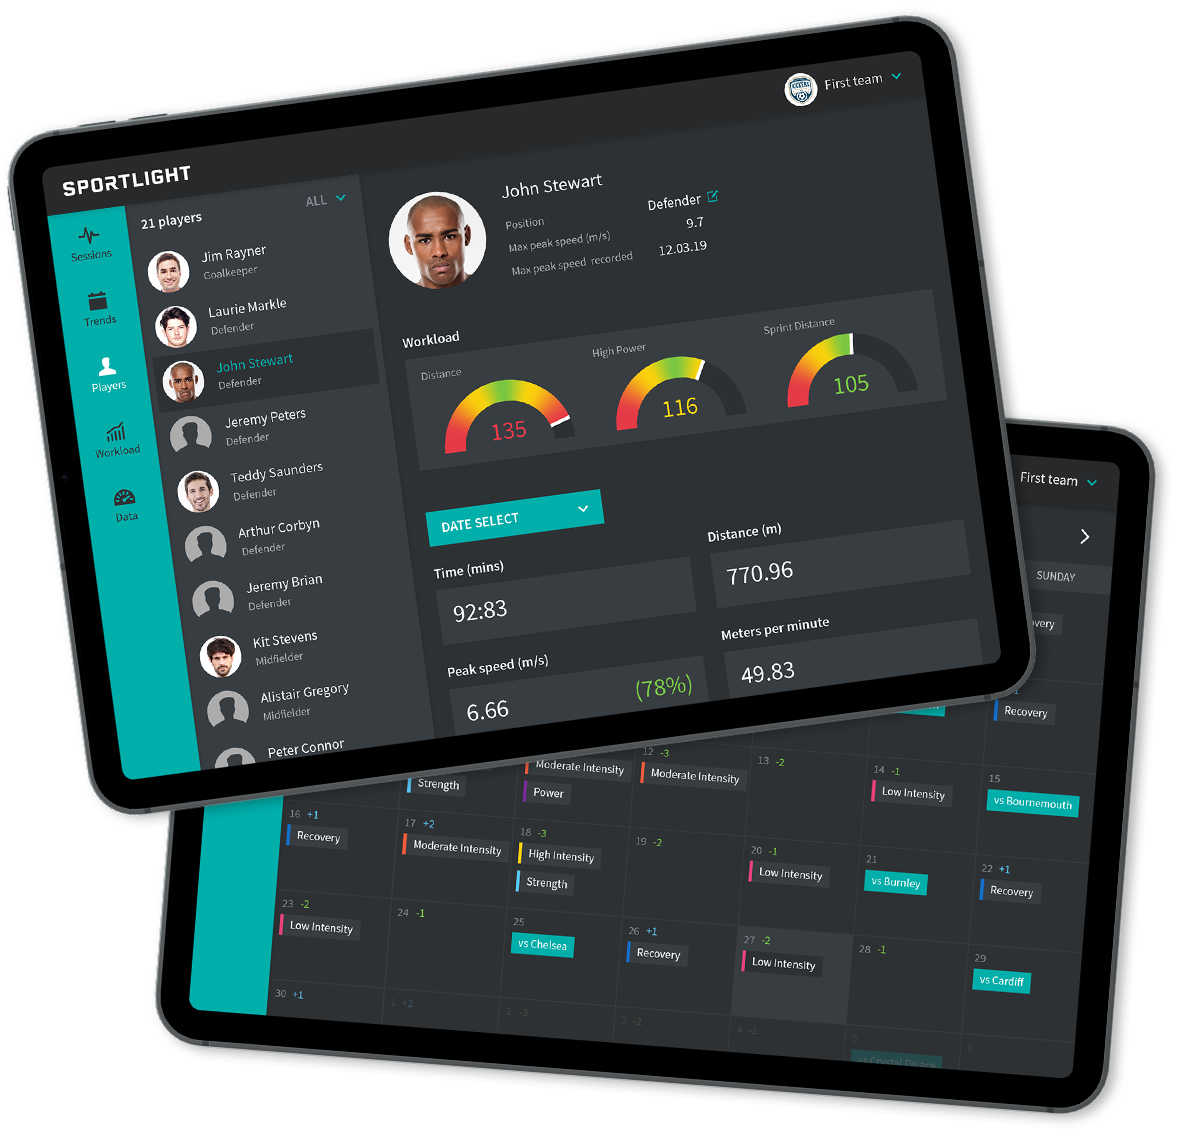 Sports Analytics application on iPad